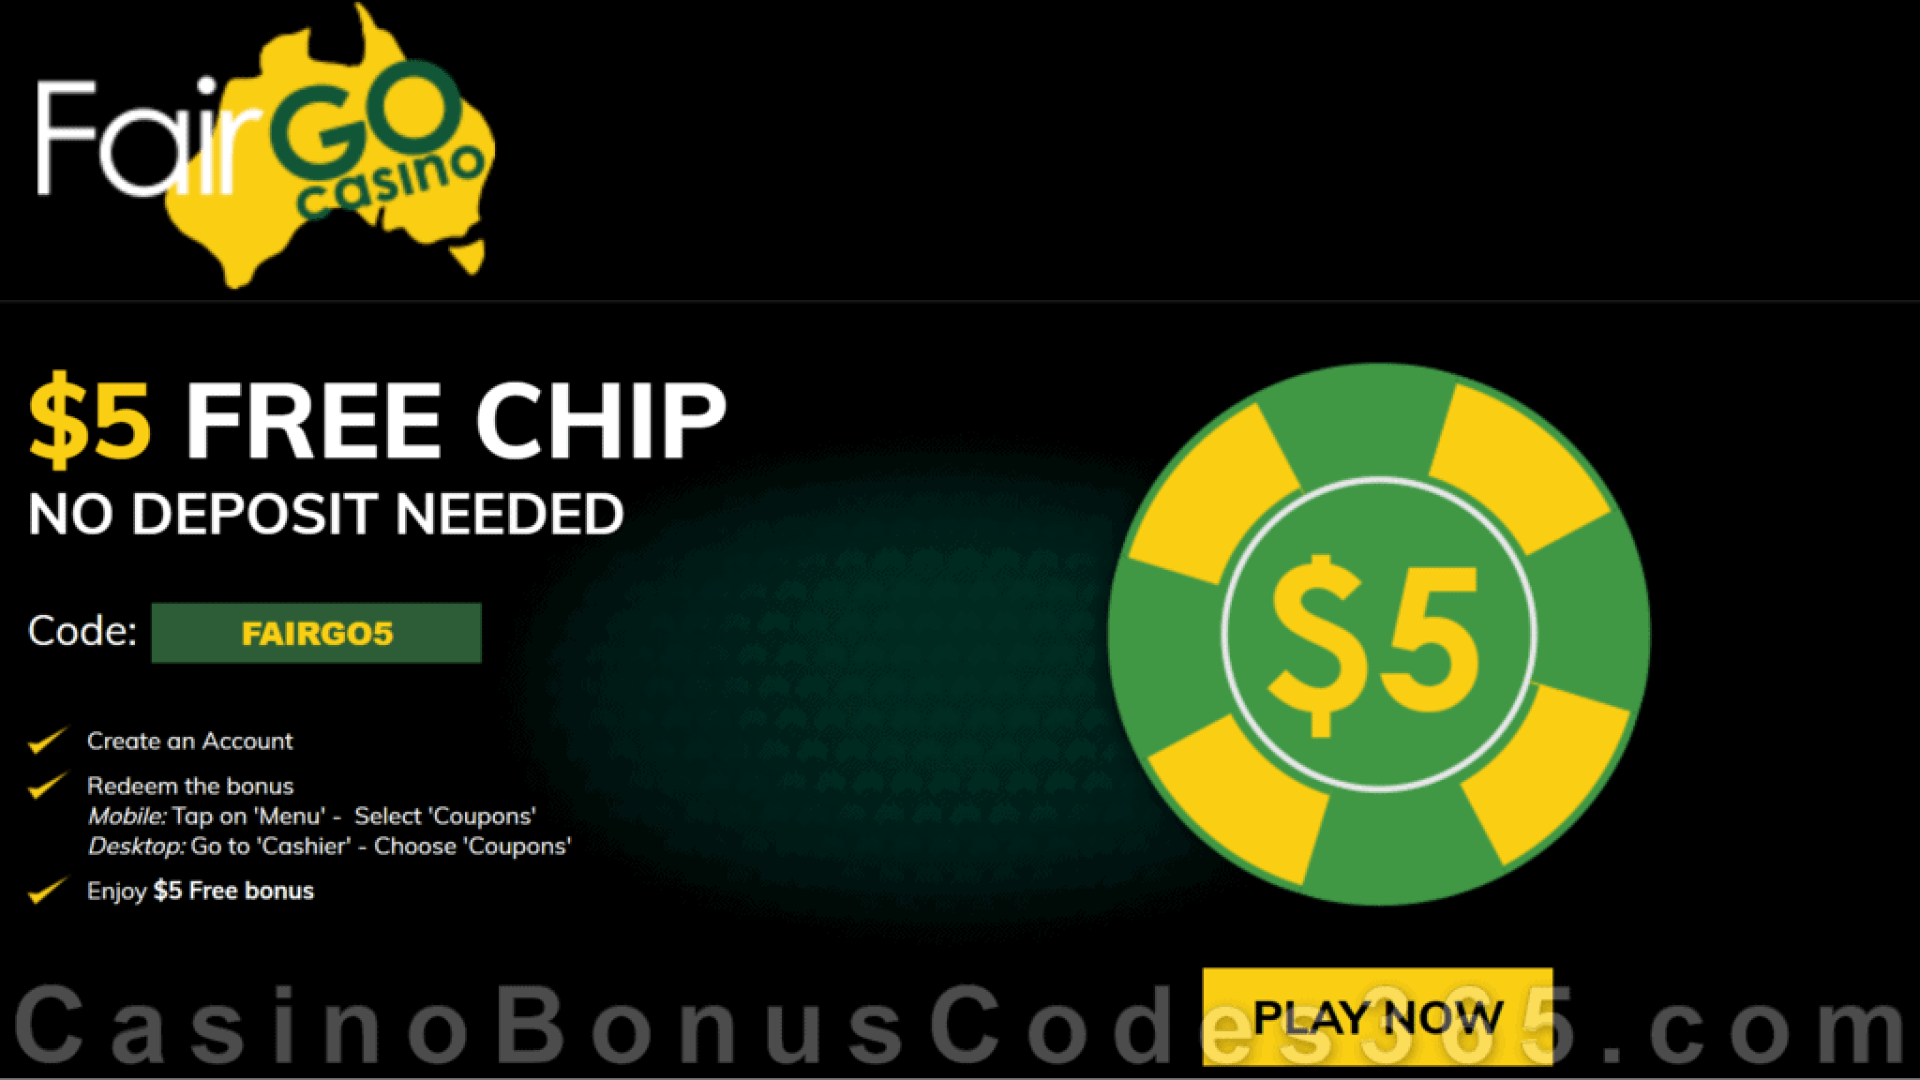 Fair Go Casino $5 FREE Chip No Deposit Welcome Bonus